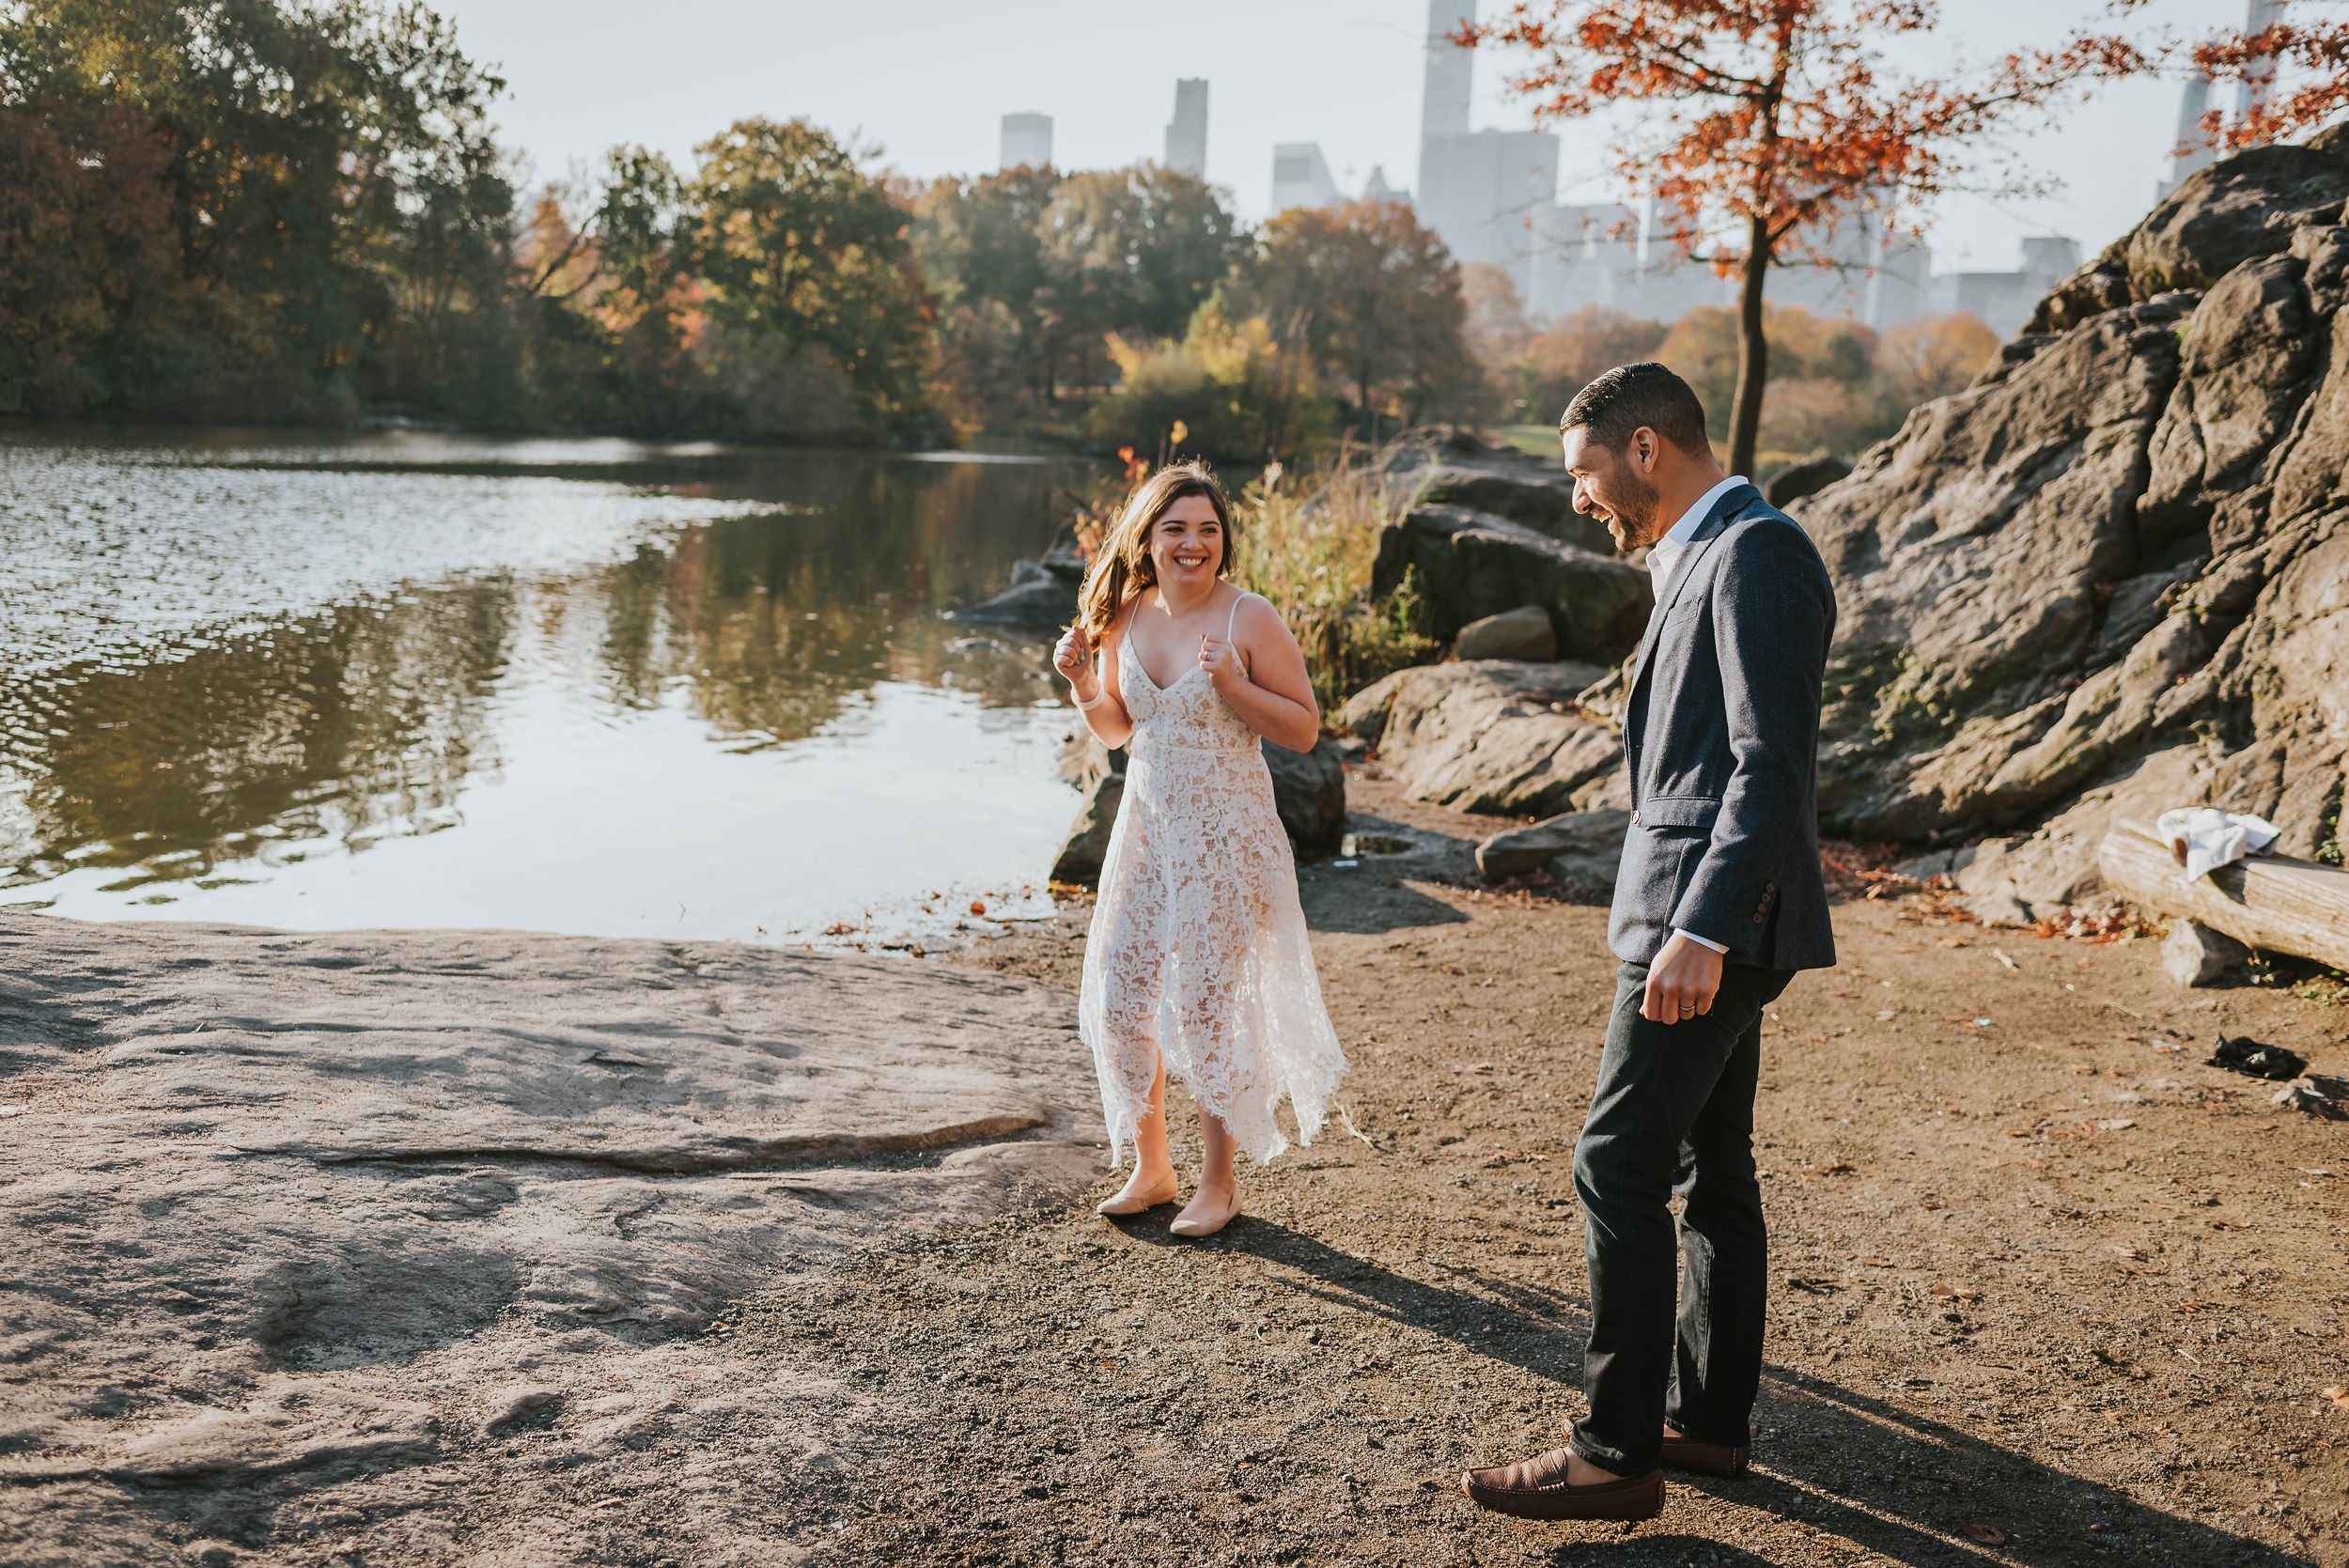 Rebecca and Darryn - Central Park Elopement NYC Manhattan 13.jpg